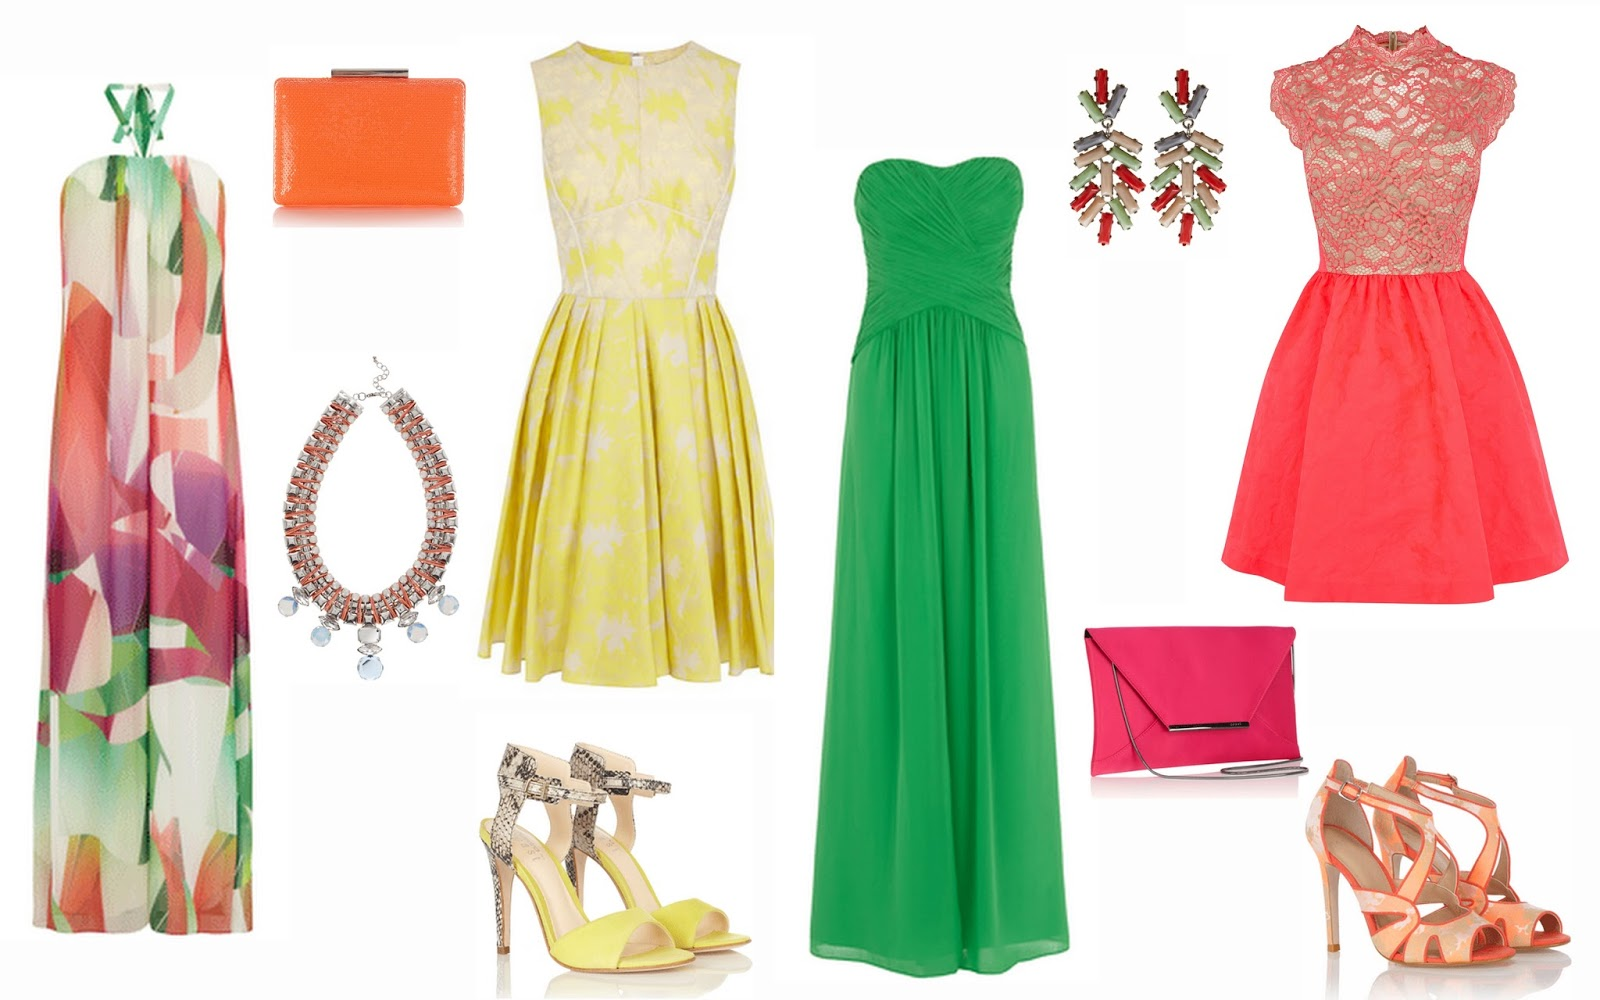 e109c460ed2 From top to bottom  Niah printed maxi £135. Neon orange sequin clutch £22.  Cali cord necklace £45. Amaline yellow jacquard dress £85.